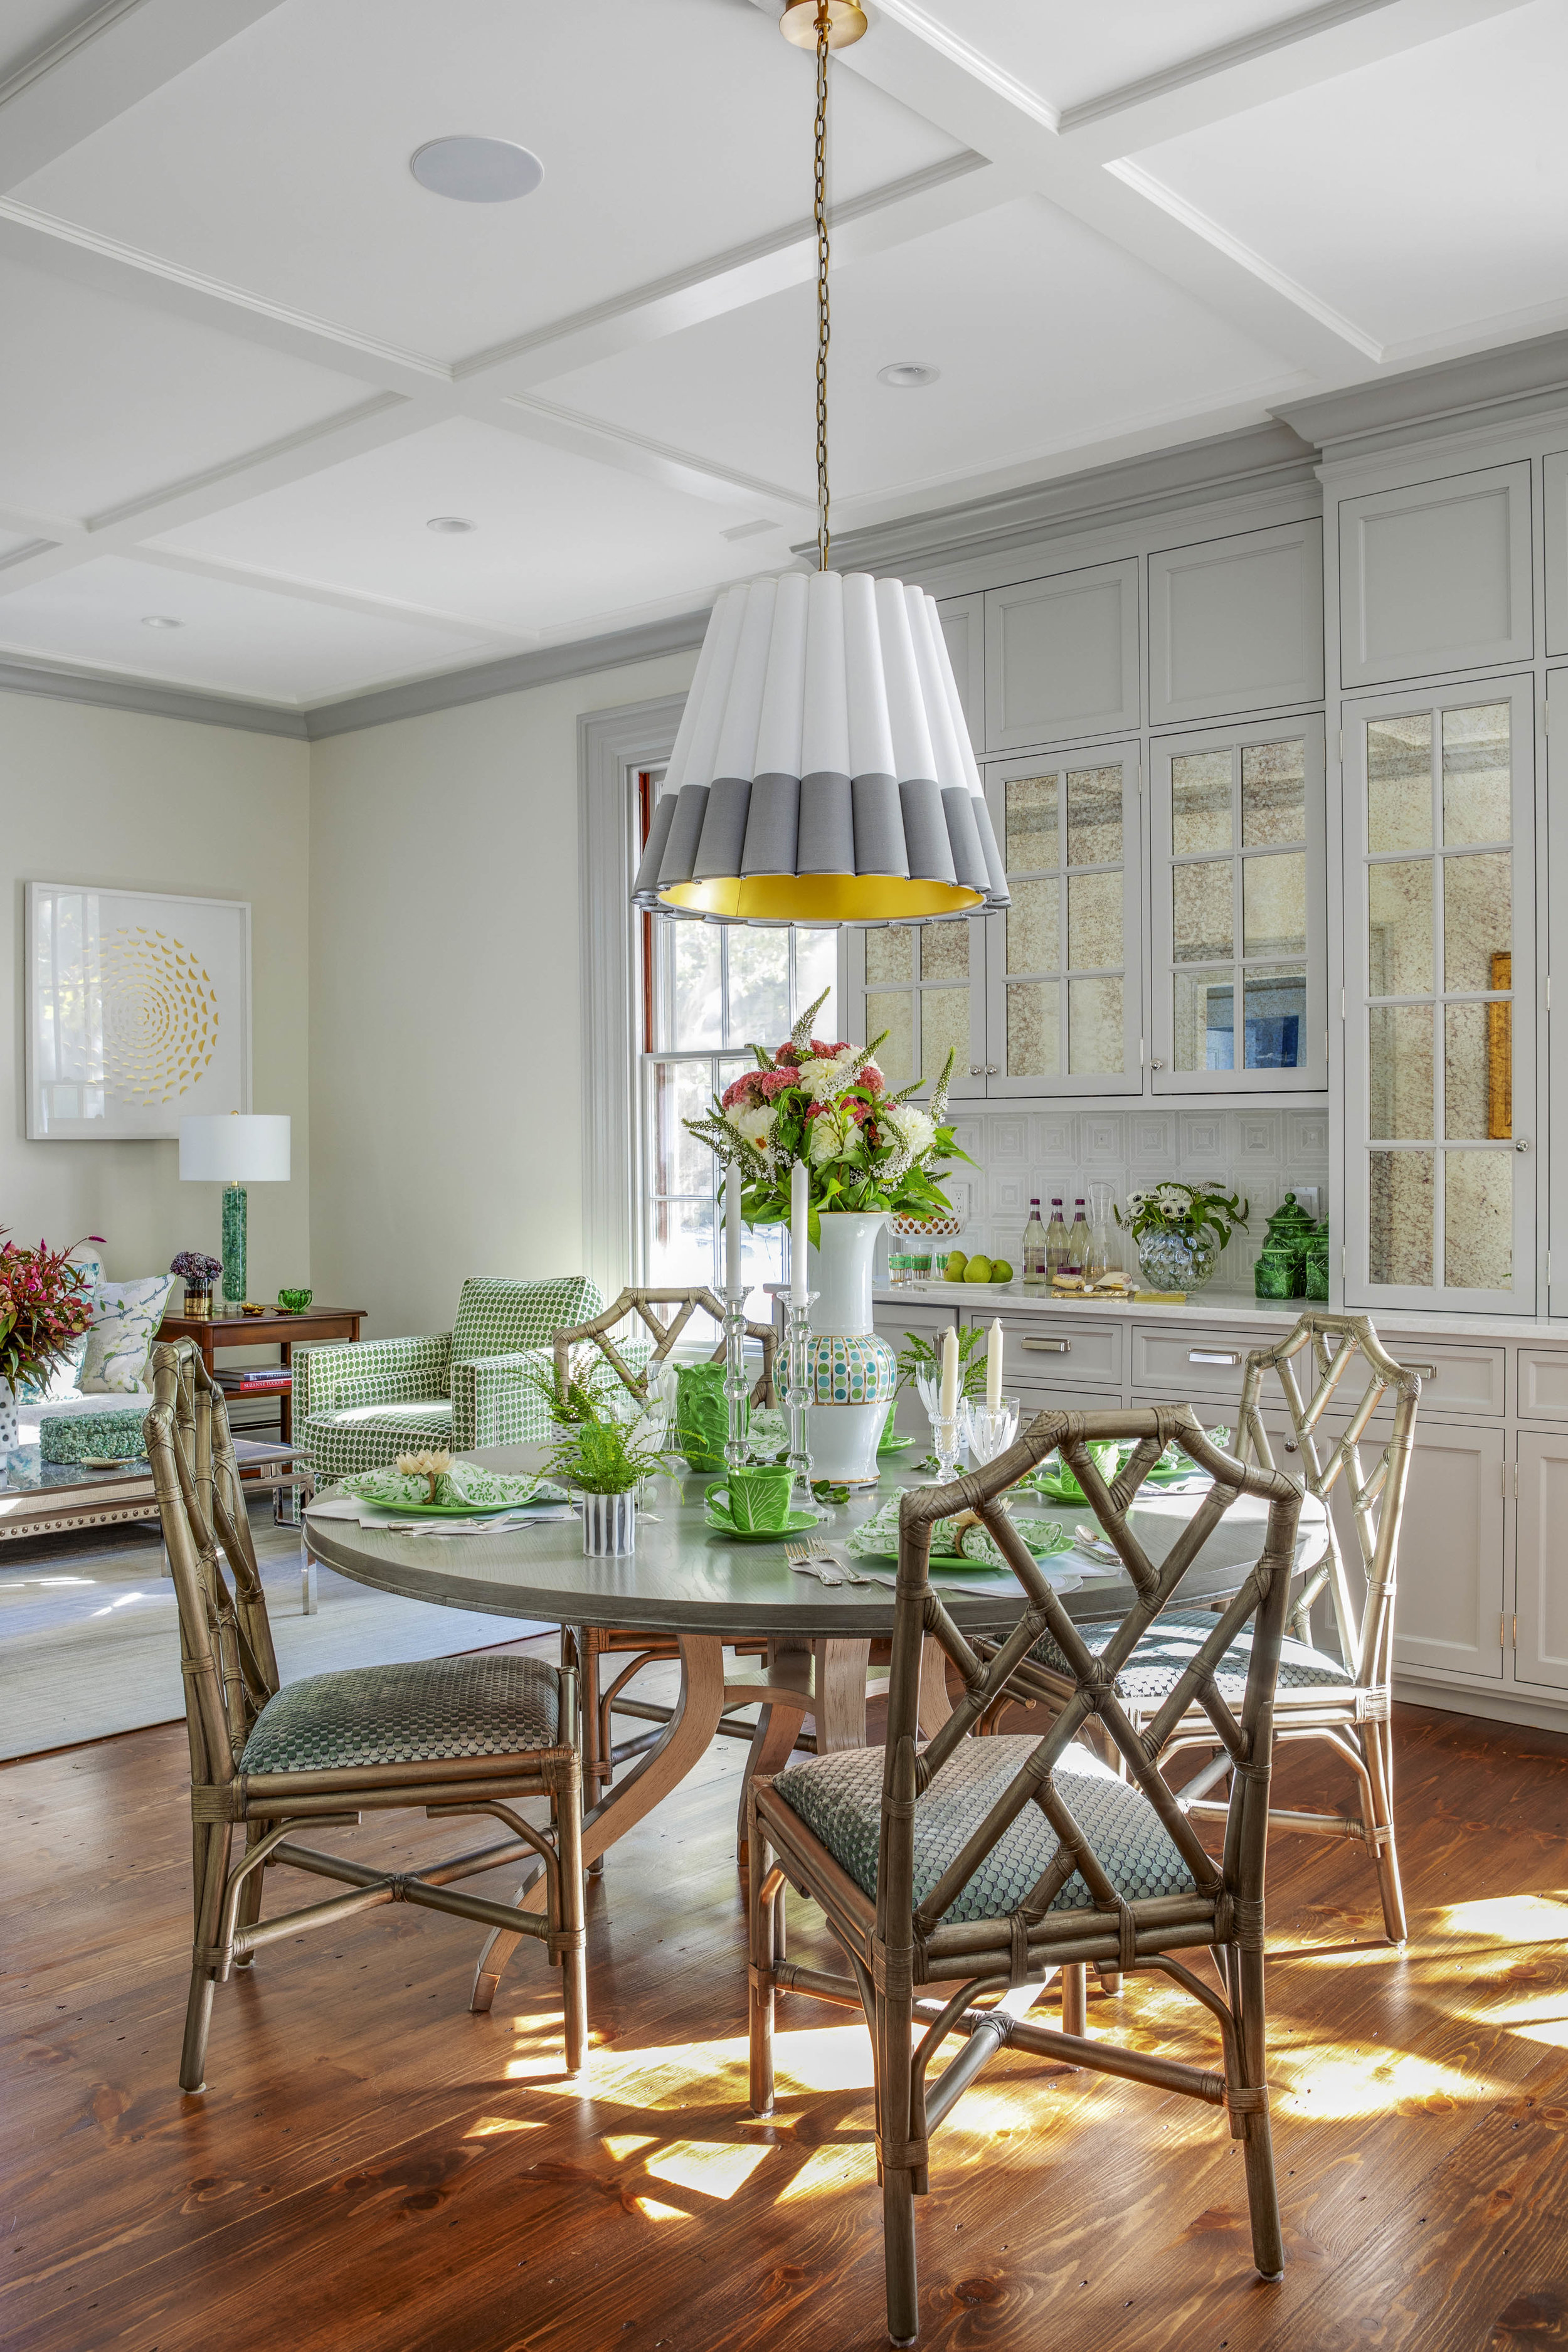 Benefit Street, Providence, Rhode Island, living room, interior design, dining table, round table, bamboo chairs, gray trim, jocelyn chiappone, digs design, digs interior design, digs design company